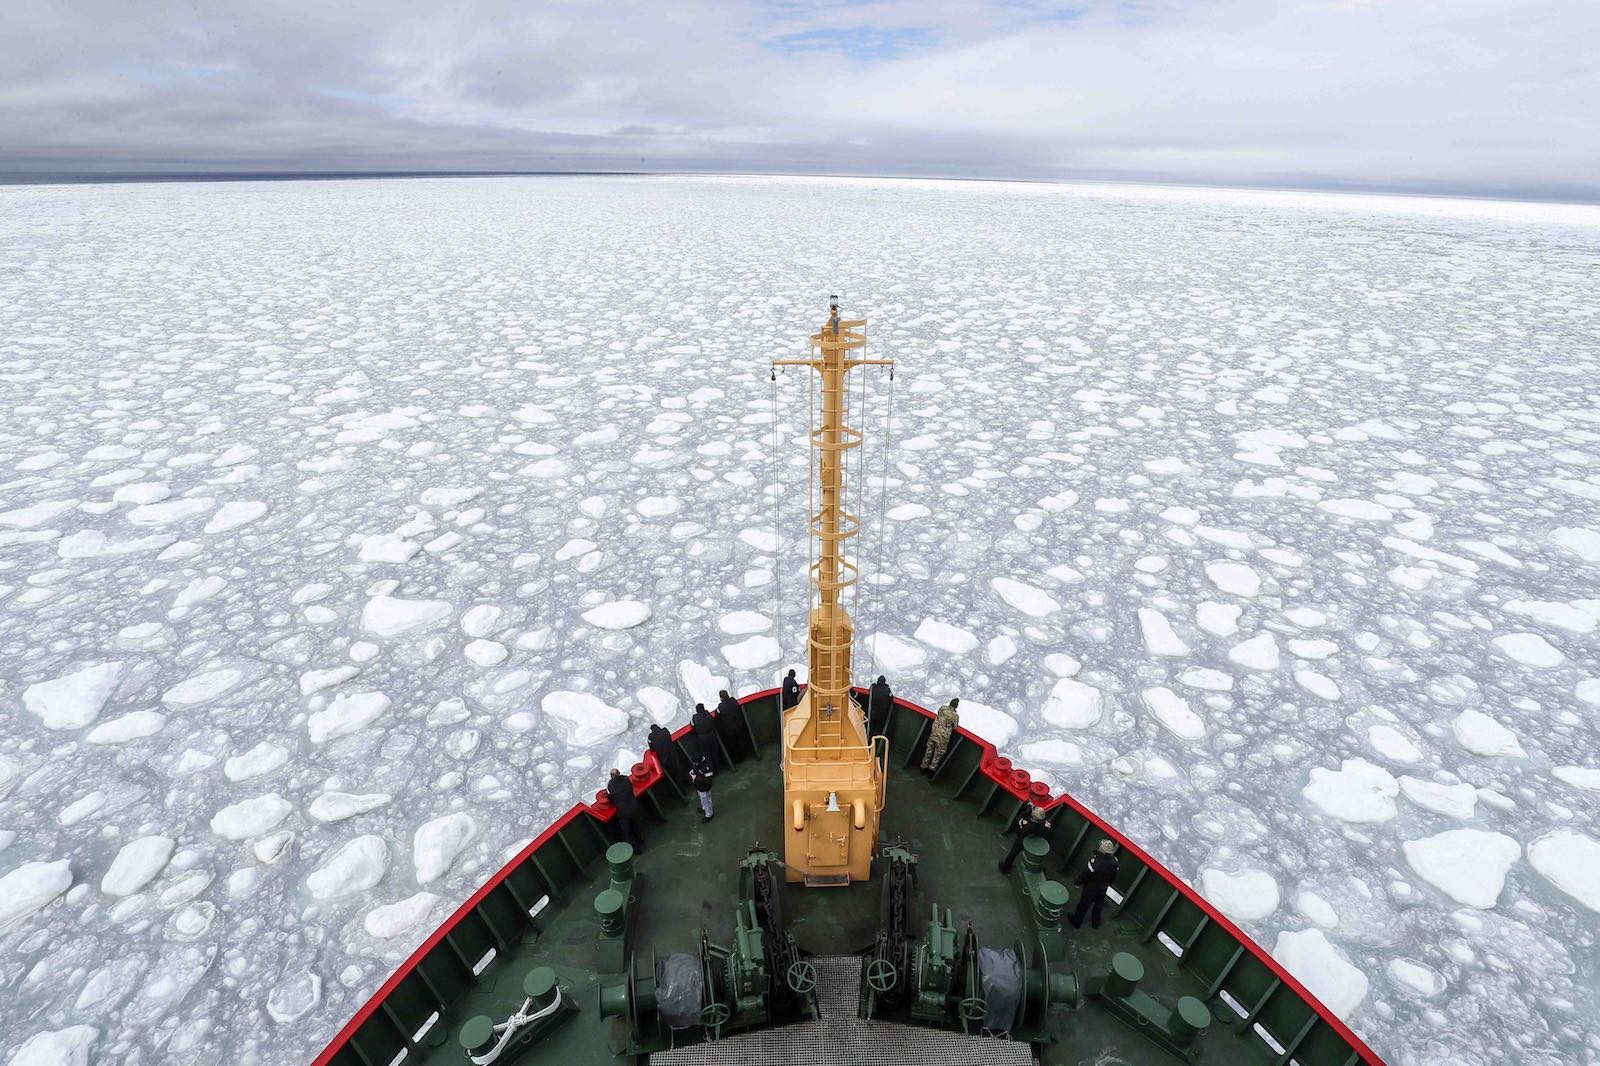 Aboard the British Royal Navy's ice patrol ship HMS Protector (Photo: HMSProtector/Twitter)